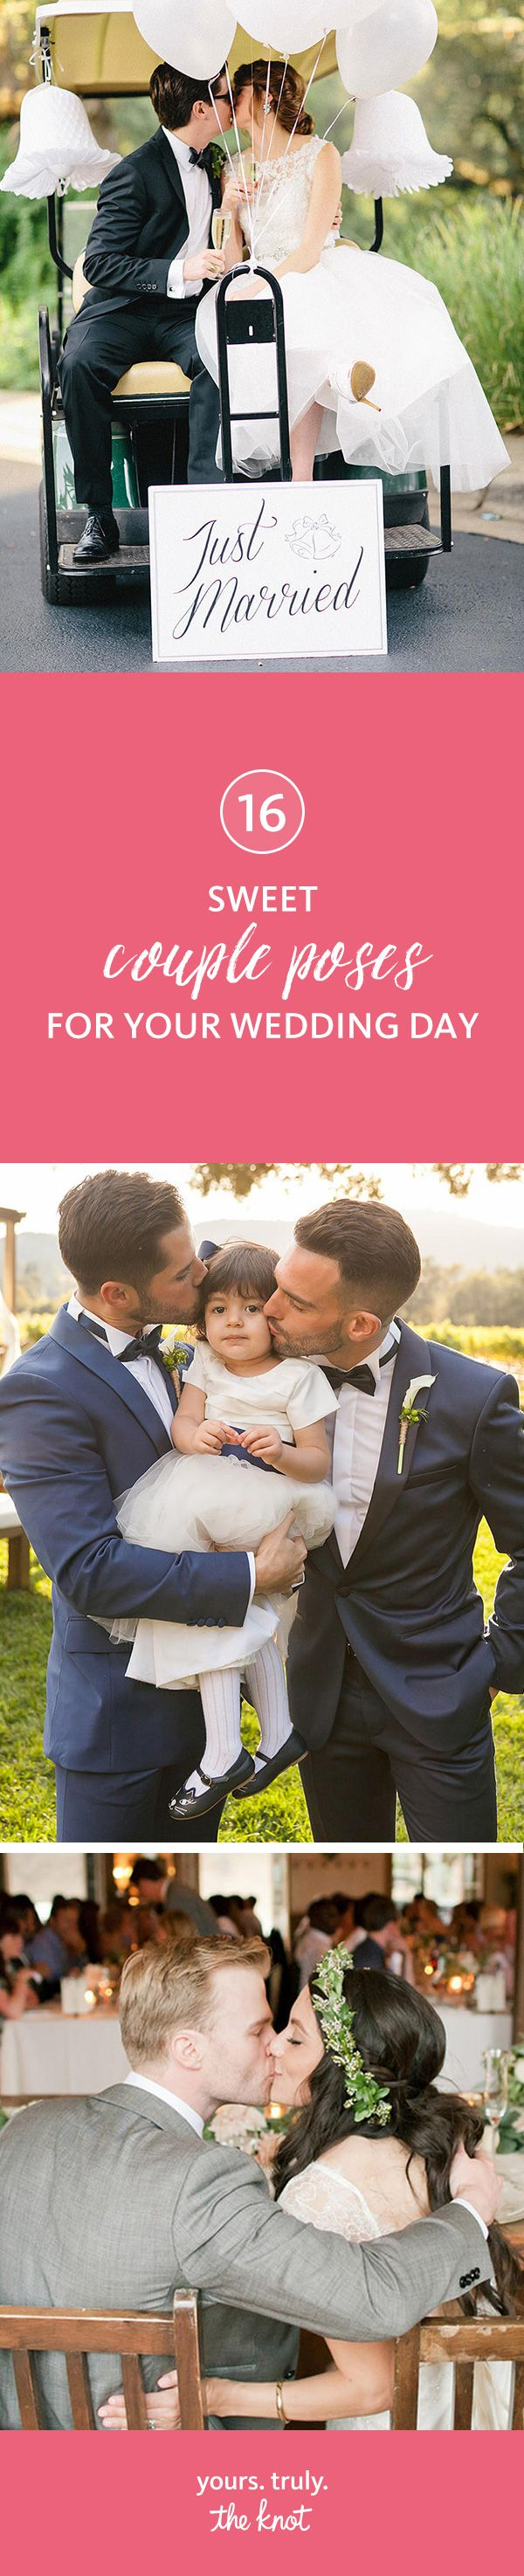 The 819 best Romance images on Pinterest | Wedding pictures, Bridal ...